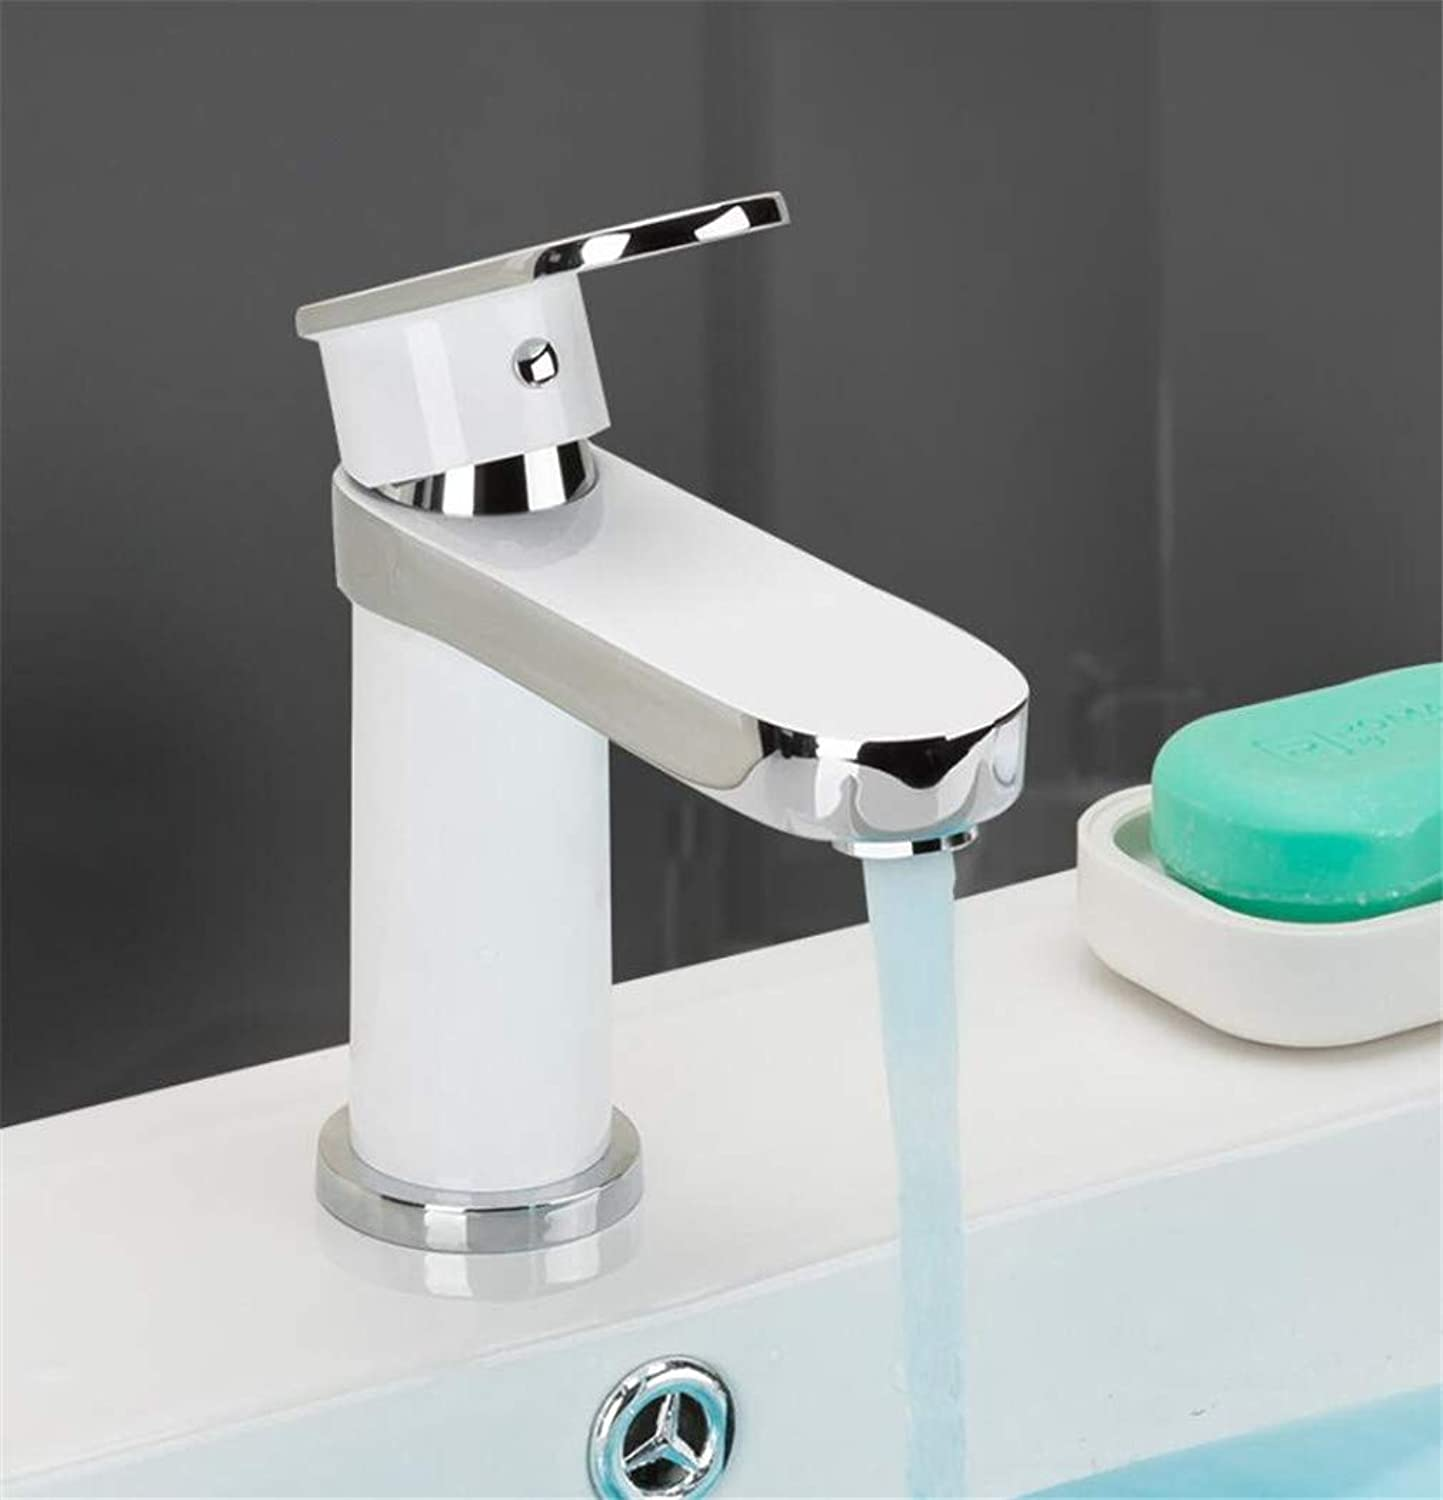 GAPPO Basin Faucet Brass Mixer Bathroom Sink Faucet Deck Mounted Bath taps Faucet Water Sink Faucet tap torneira do anheiro